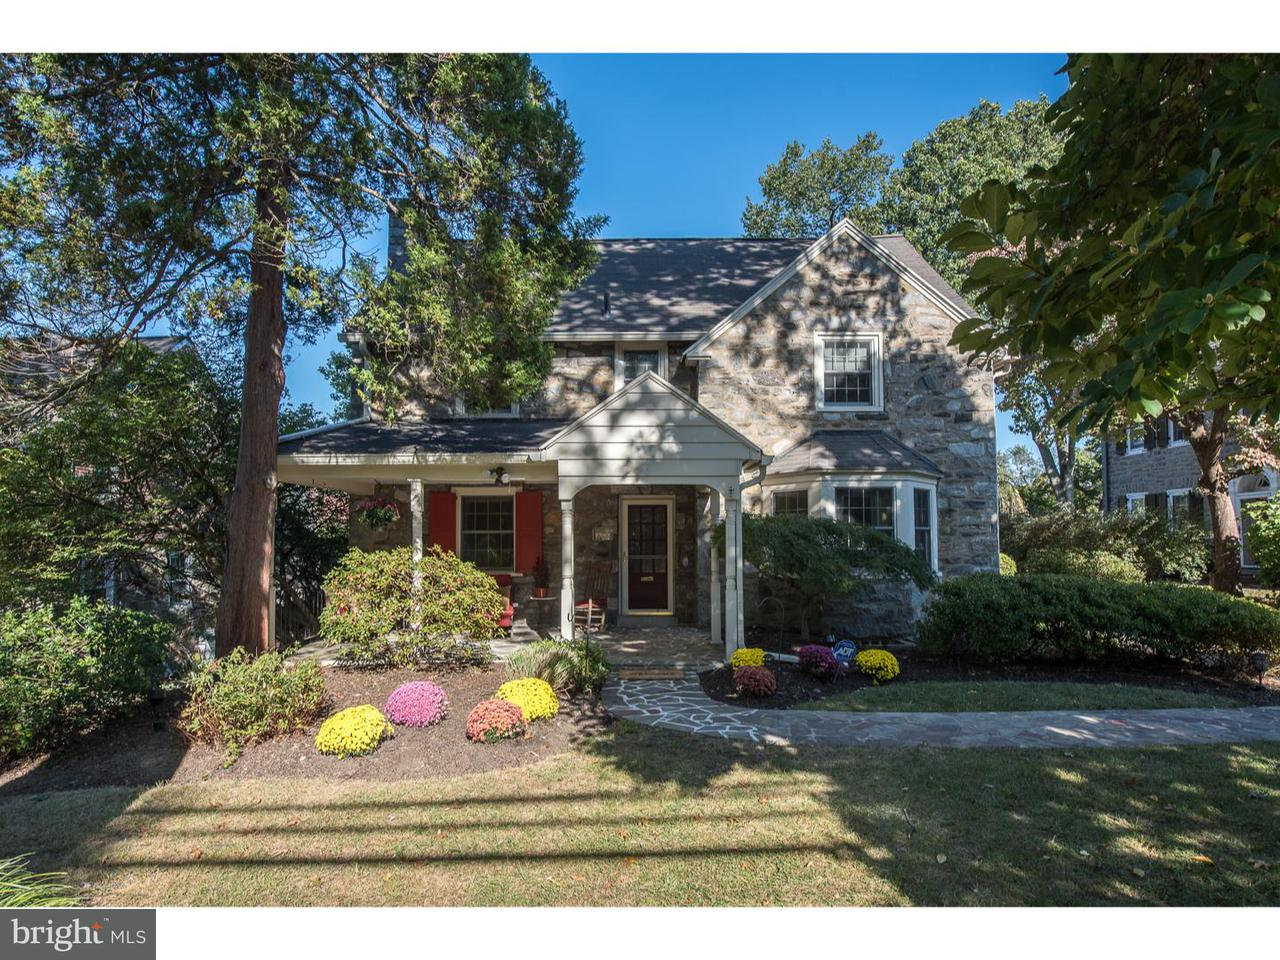 Single Family Home for Sale at 615 YALE Road Bala Cynwyd, Pennsylvania 19004 United States